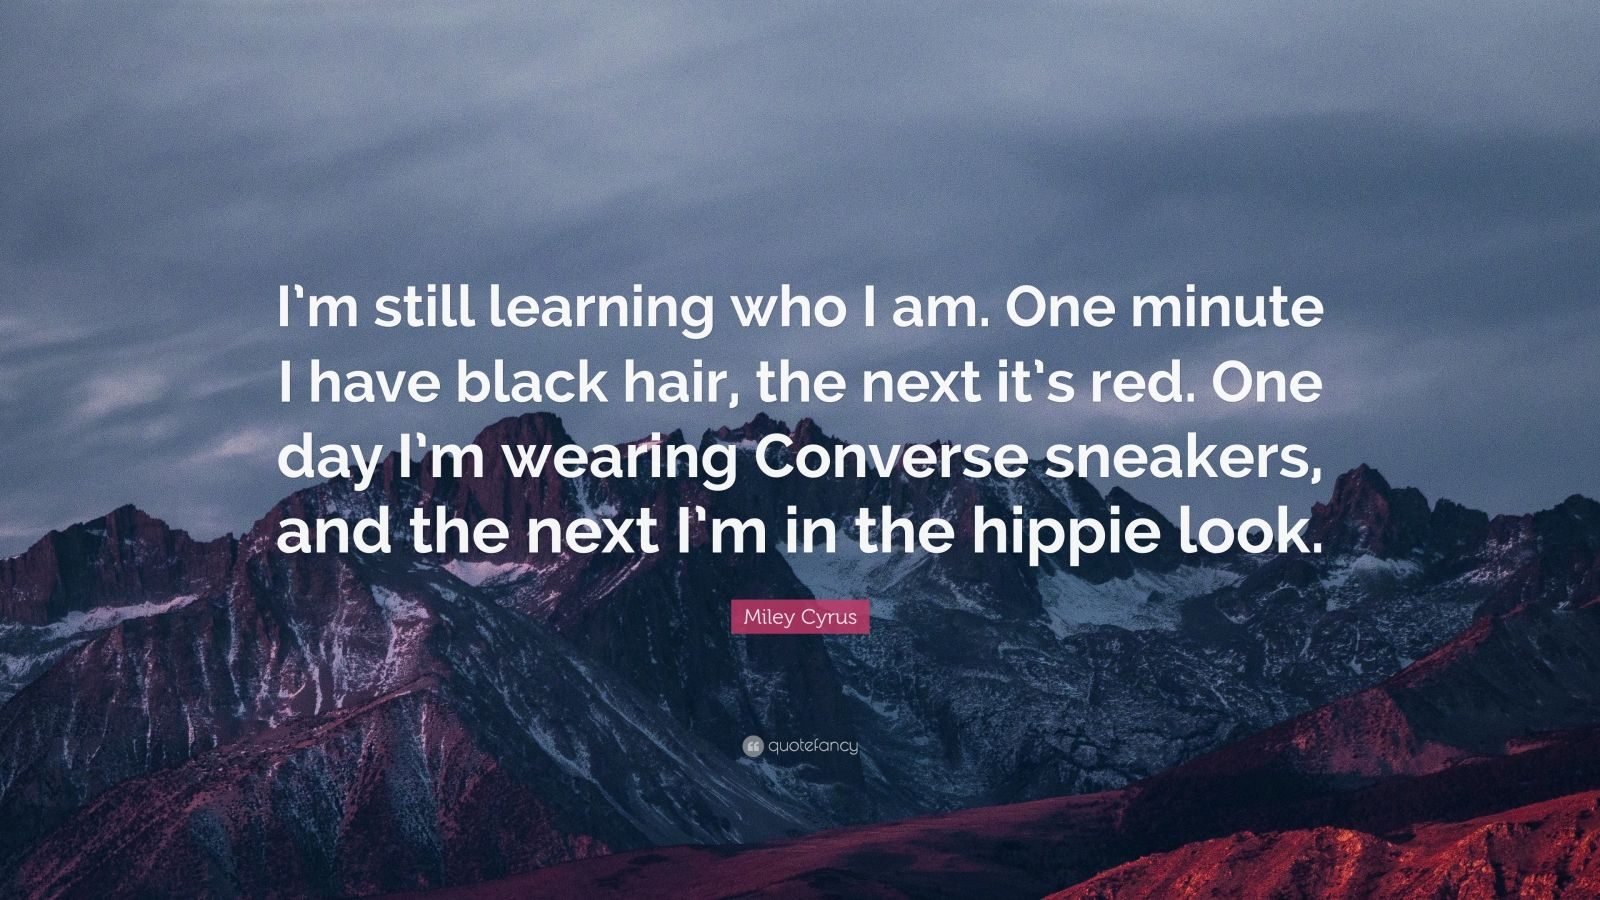 """Miley Cyrus Quote: """"I'm still learning who I am. One minute I have black hair, the next it's red. One day I'm wearing Converse sneakers, and the next I'm in the hippie look."""""""